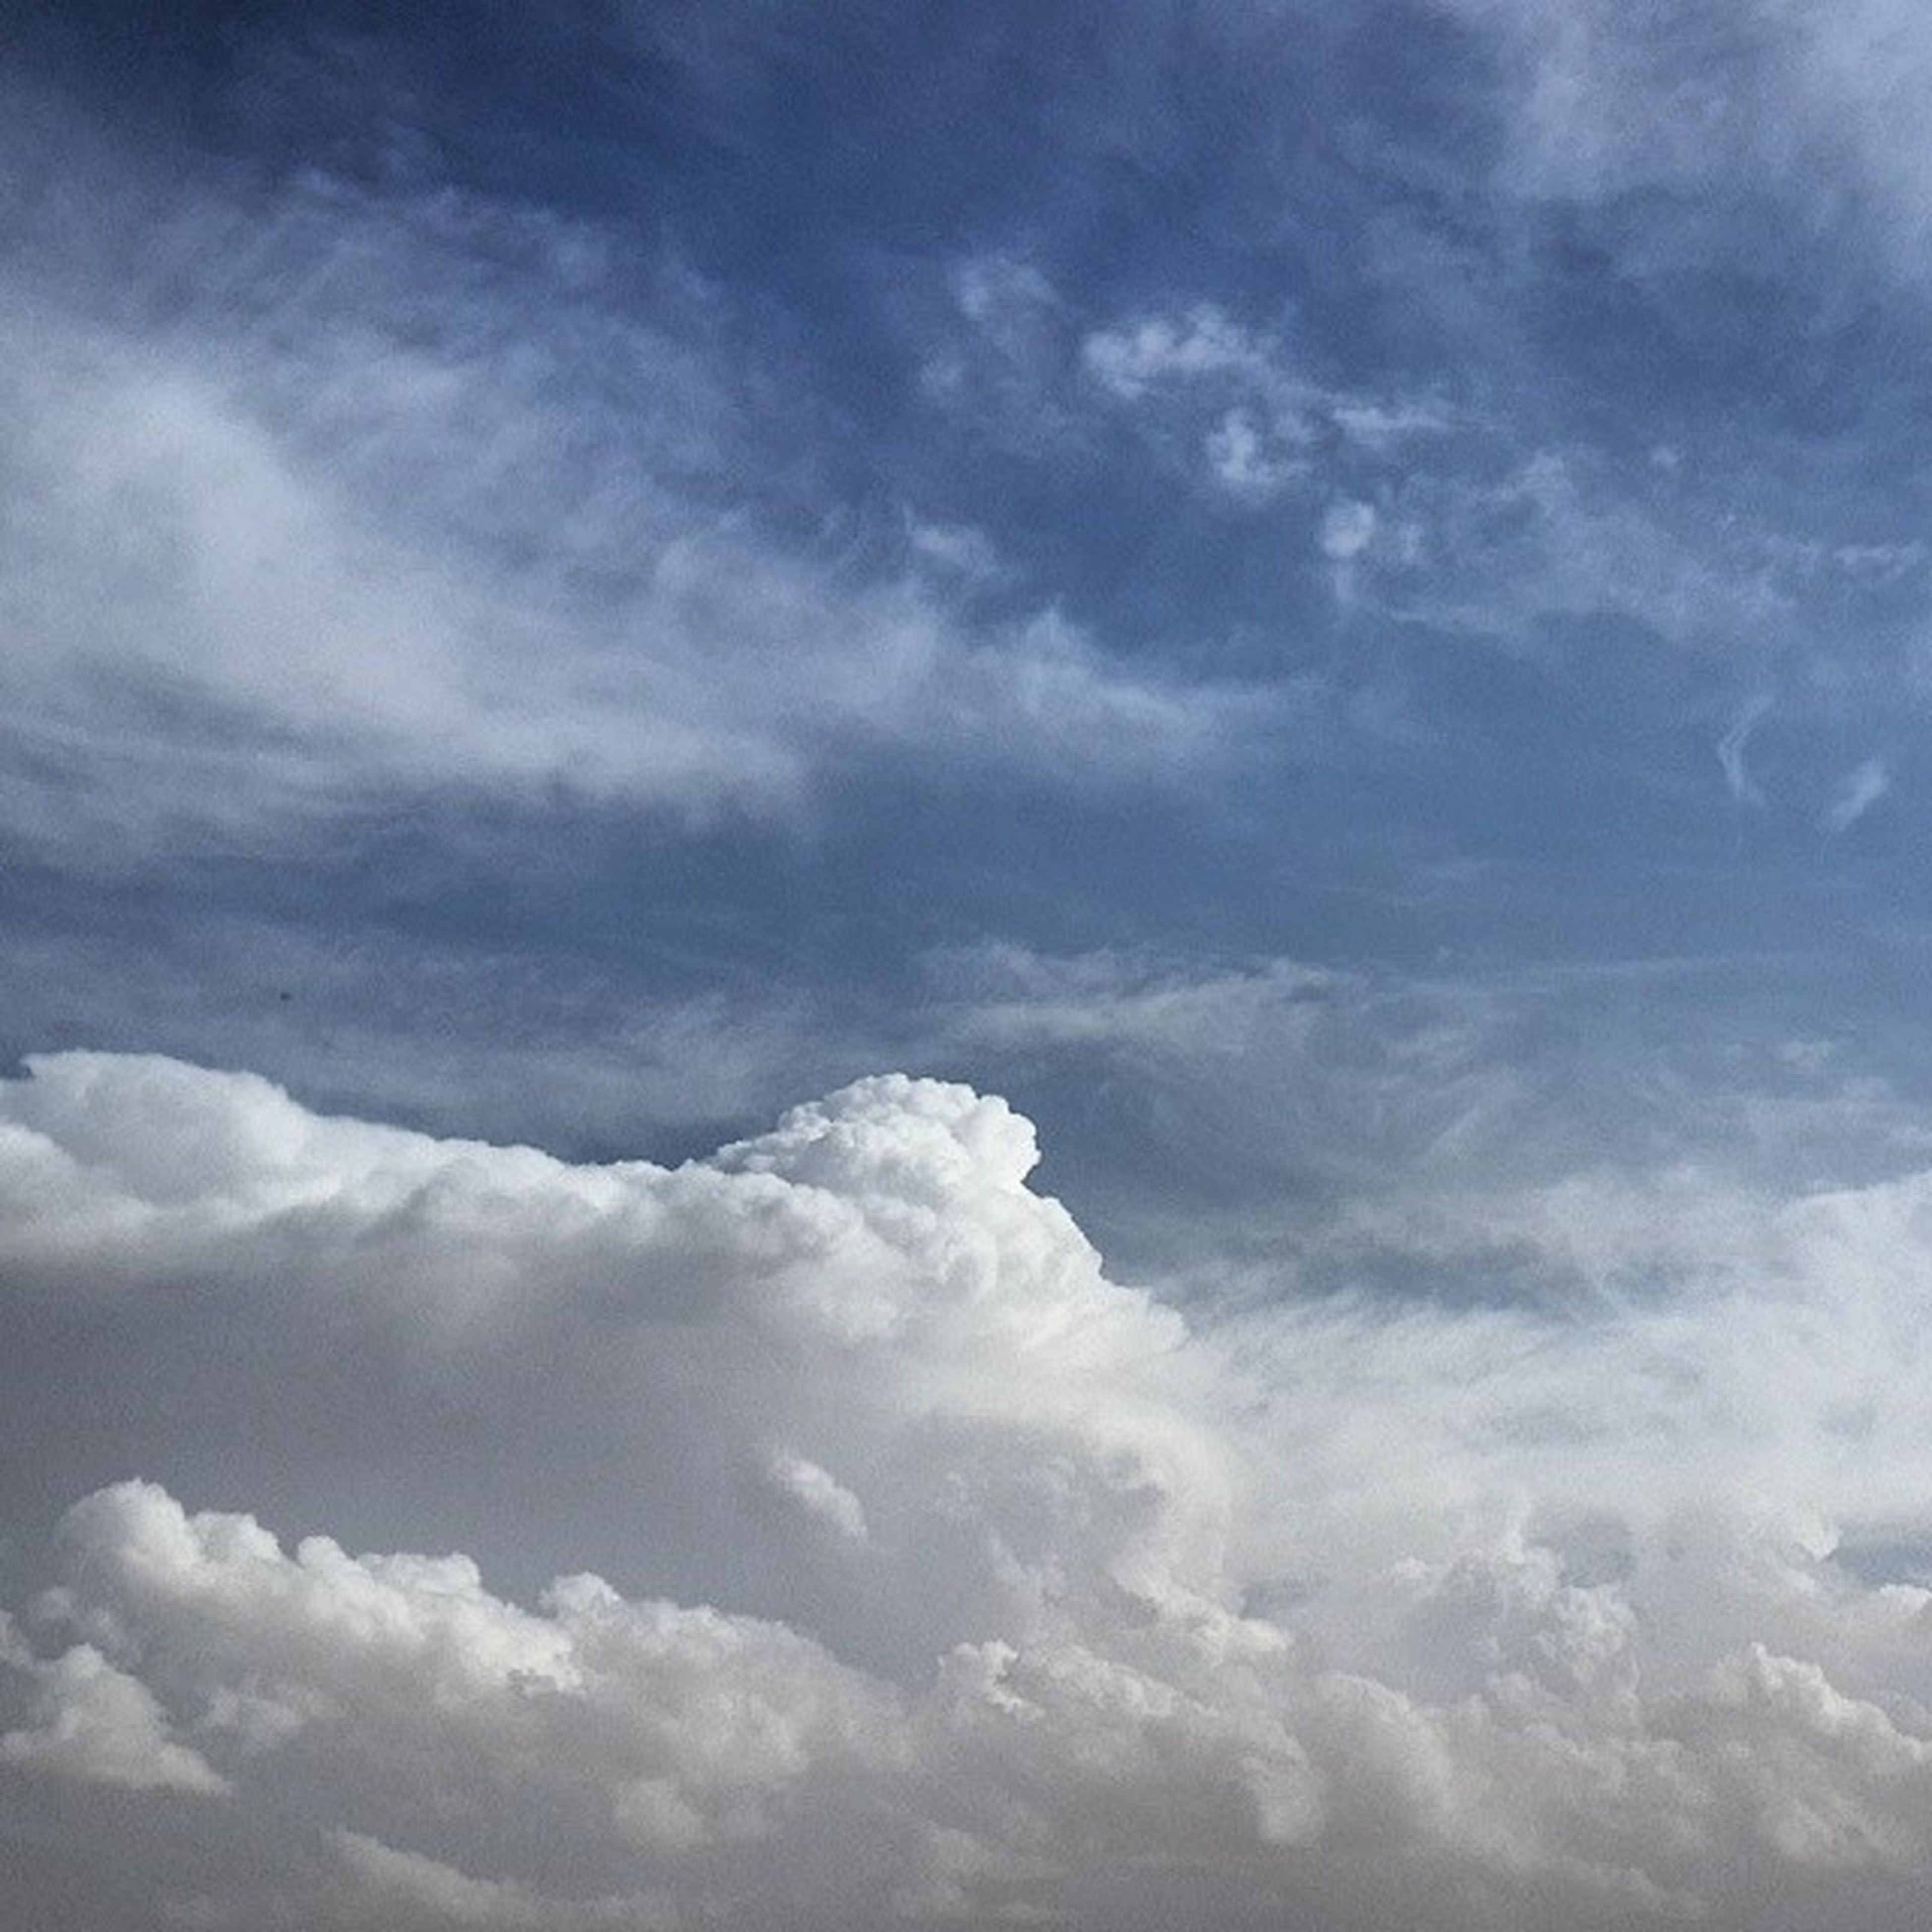 sky, cloud - sky, scenics, beauty in nature, tranquility, tranquil scene, cloudy, nature, weather, white color, cloudscape, cloud, low angle view, idyllic, day, outdoors, blue, sky only, no people, majestic